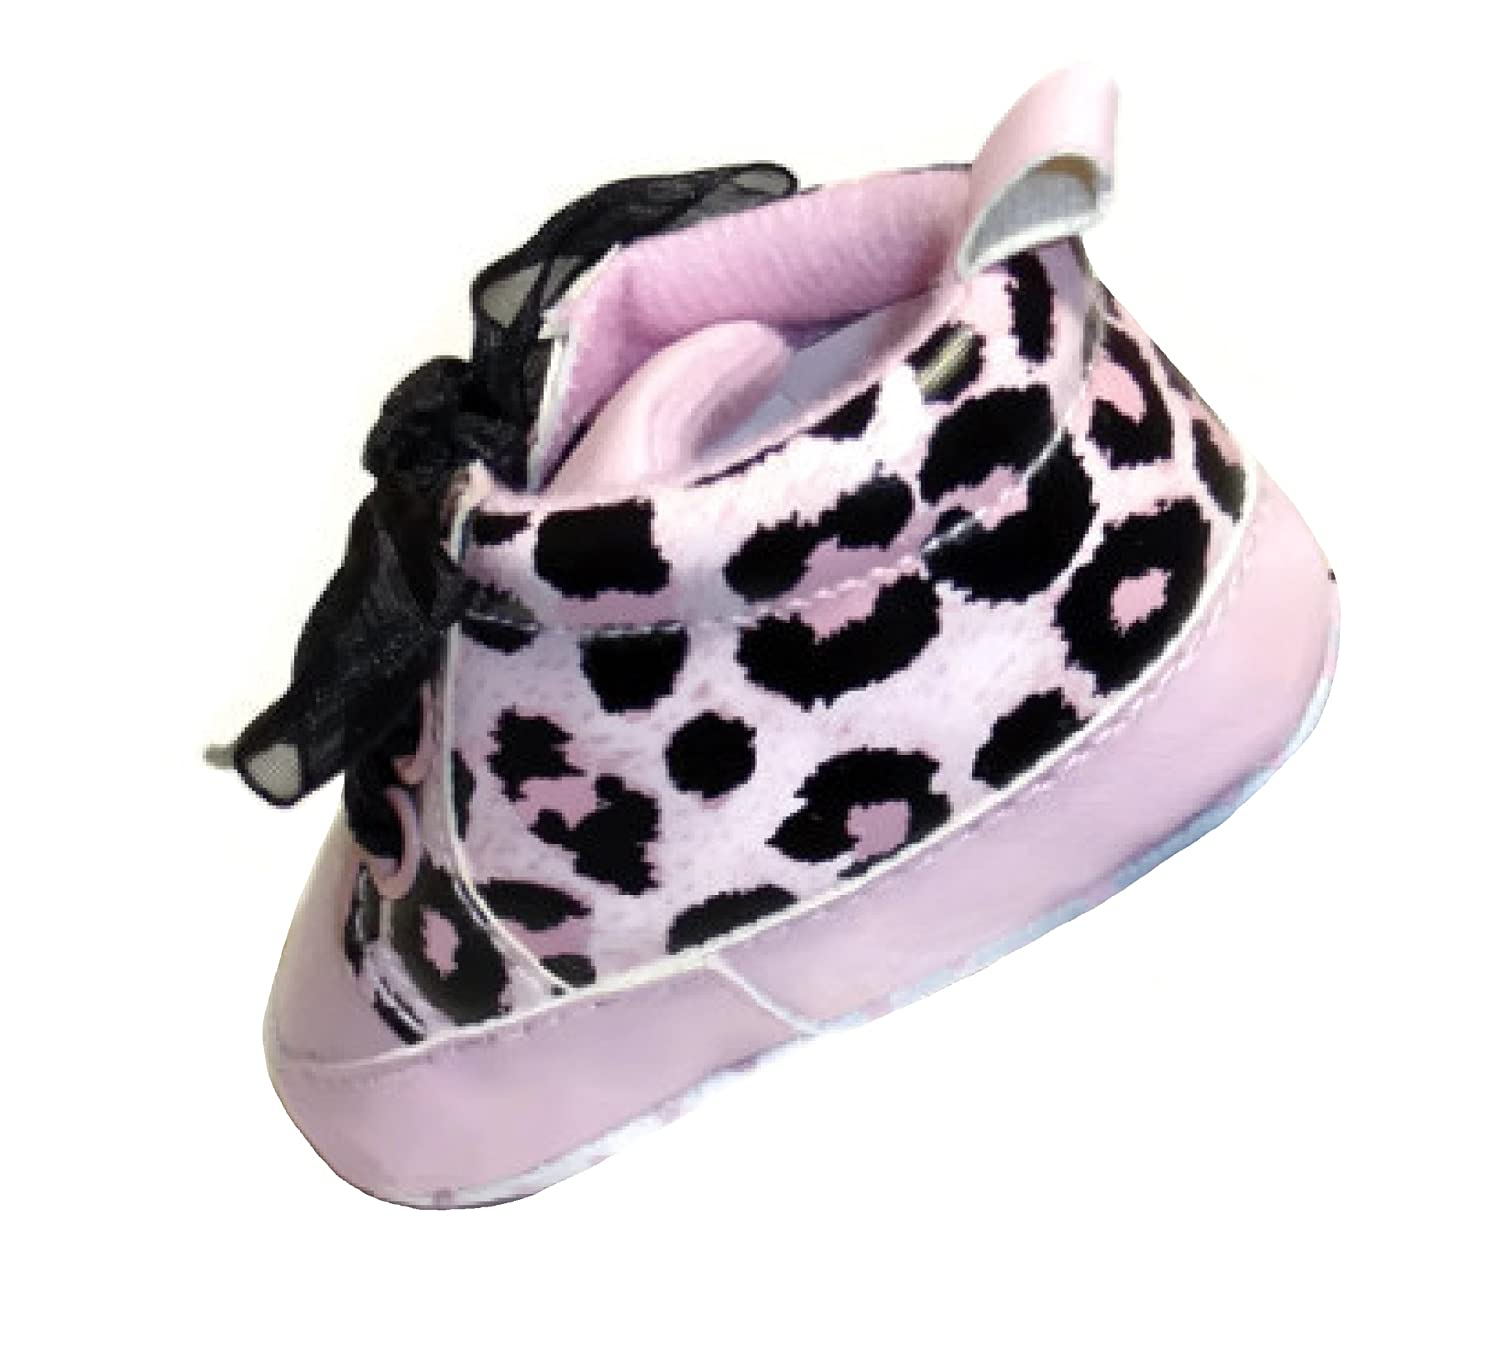 3.75 Insole Baby Girls High Top Shoes with Black Shoe Lace 3-6 Months